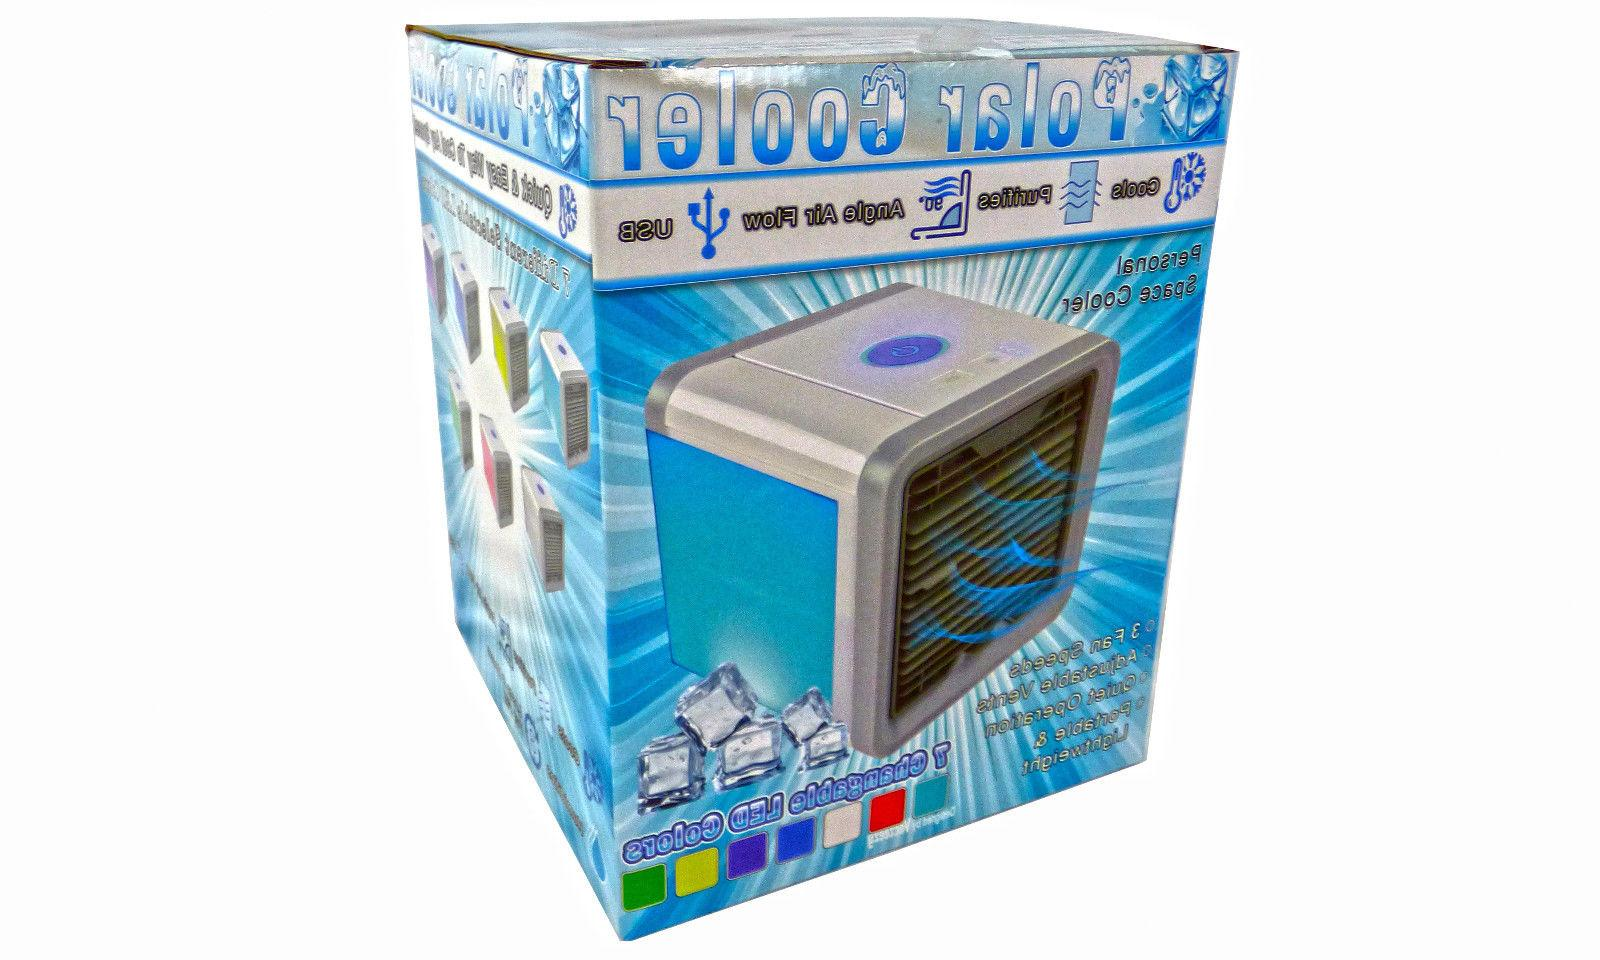 2 Air Conditioner Humidifier